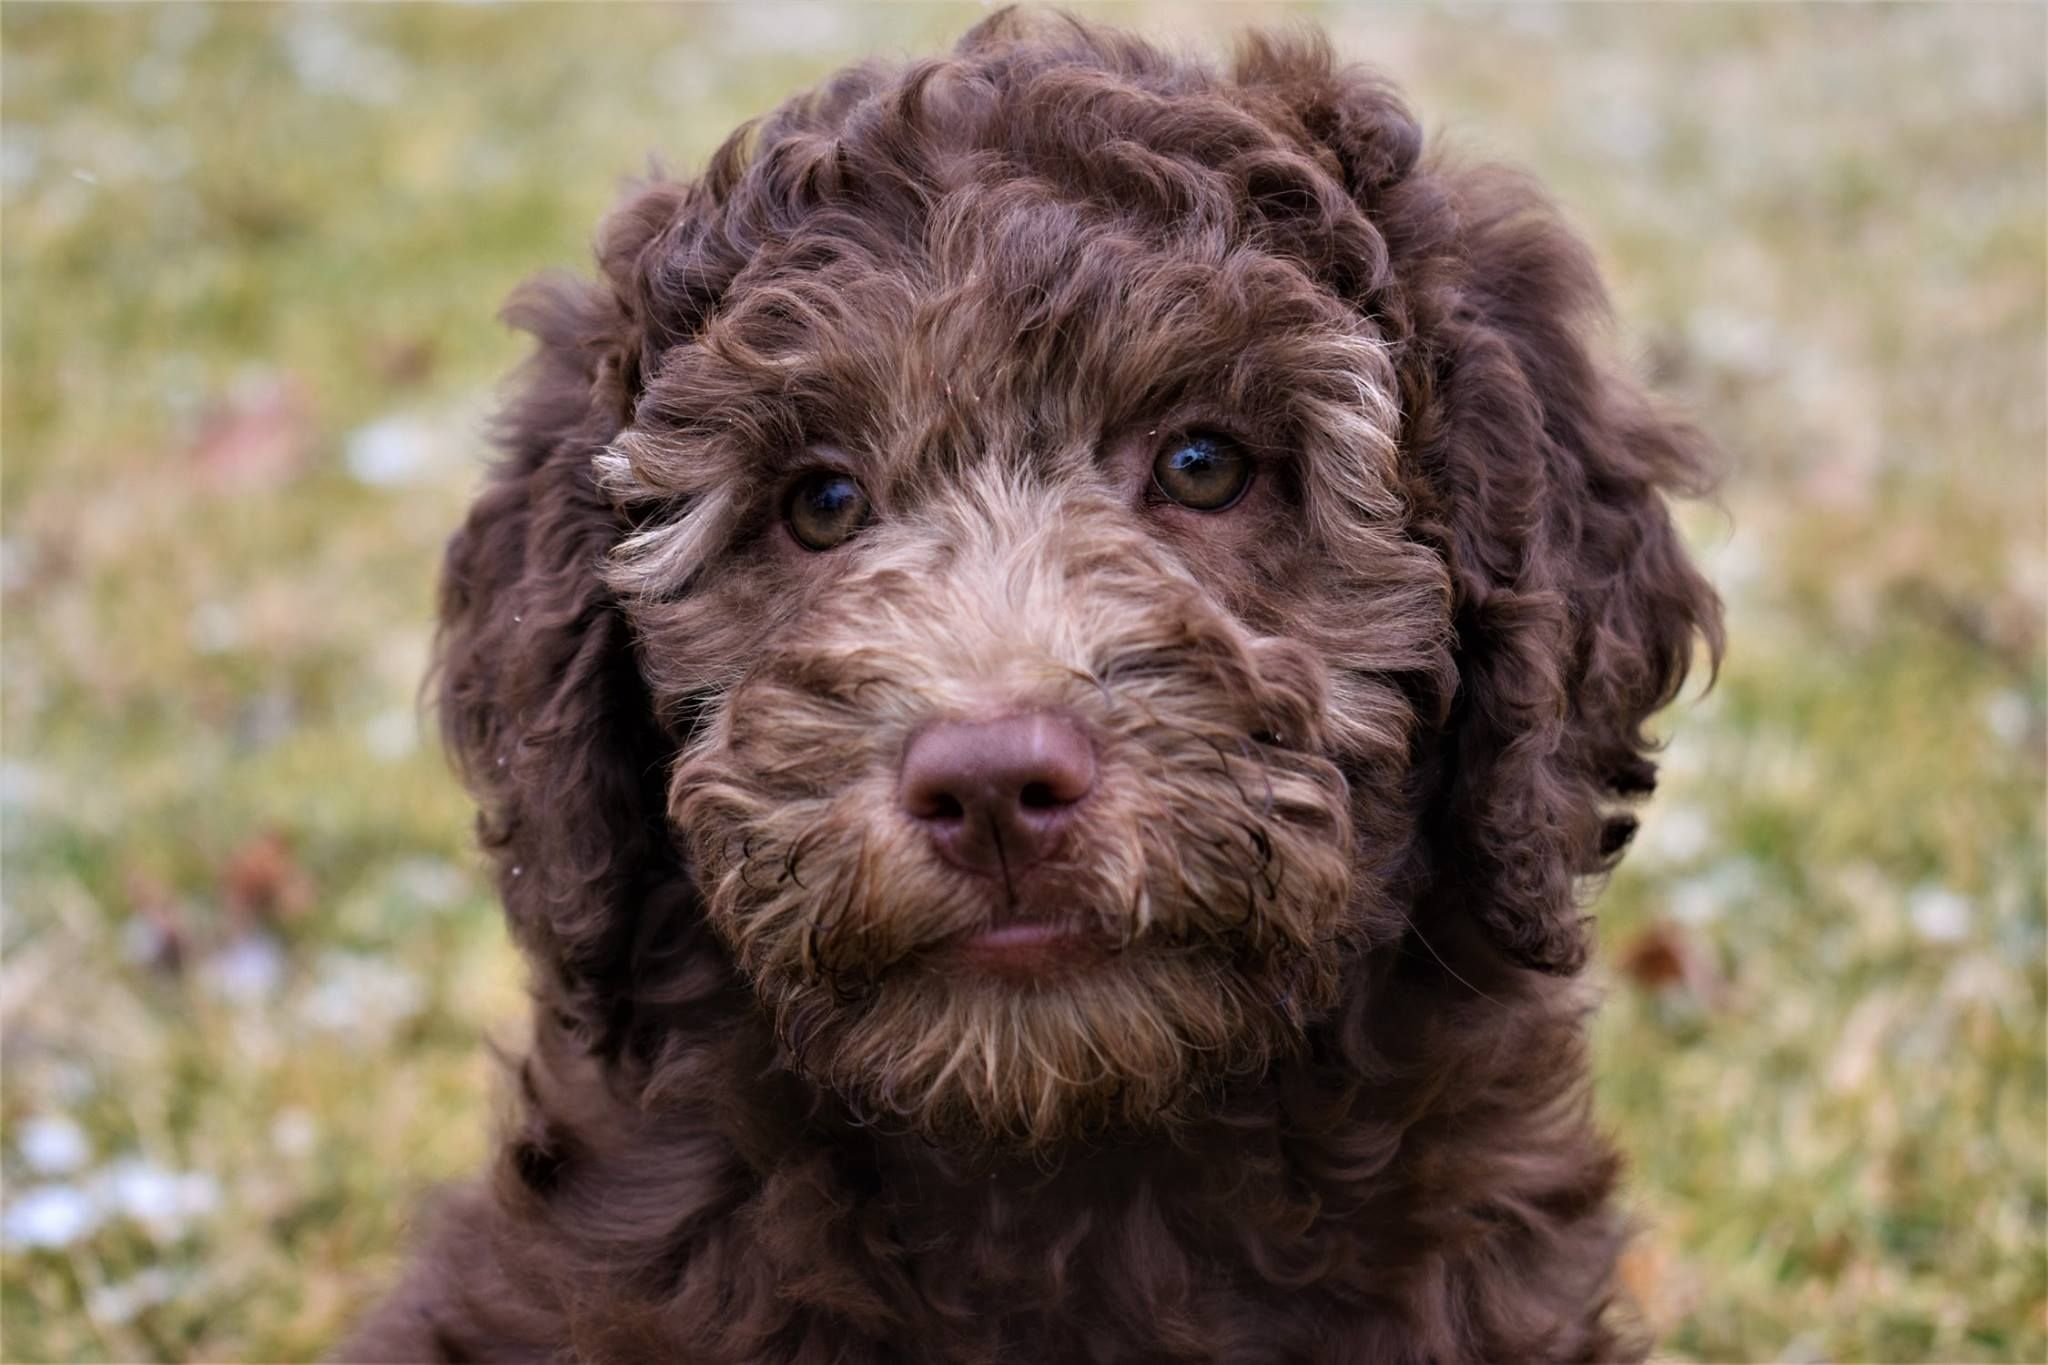 Lauderdoodles Retired Breeders Obedience Trained Obedience Training Cute Animals Goldendoodle